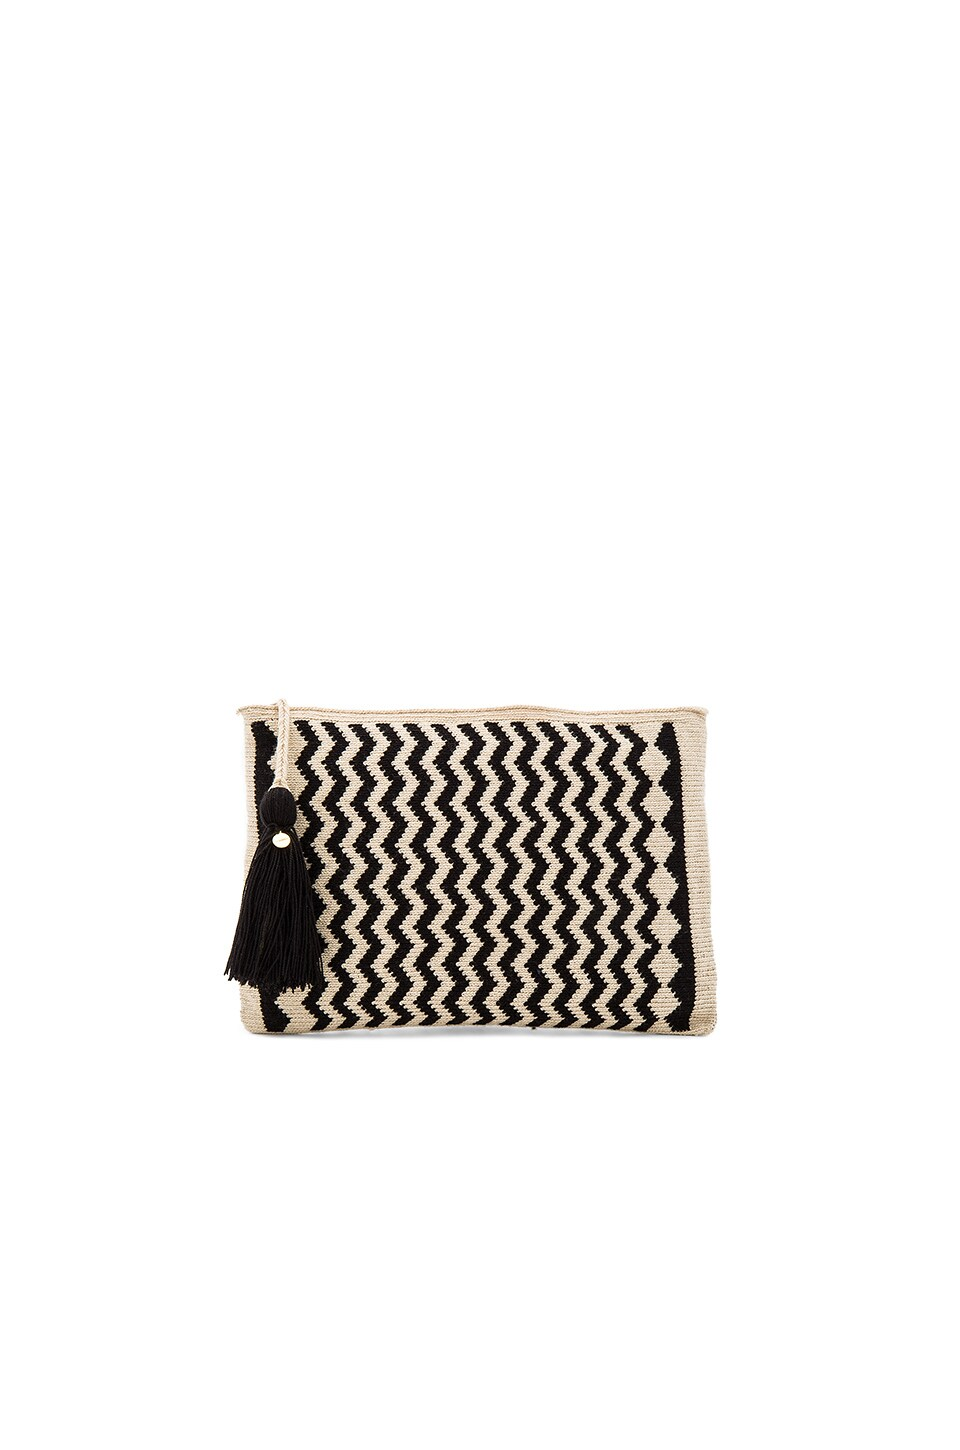 Guanabana Zig Zag Clutch in Black